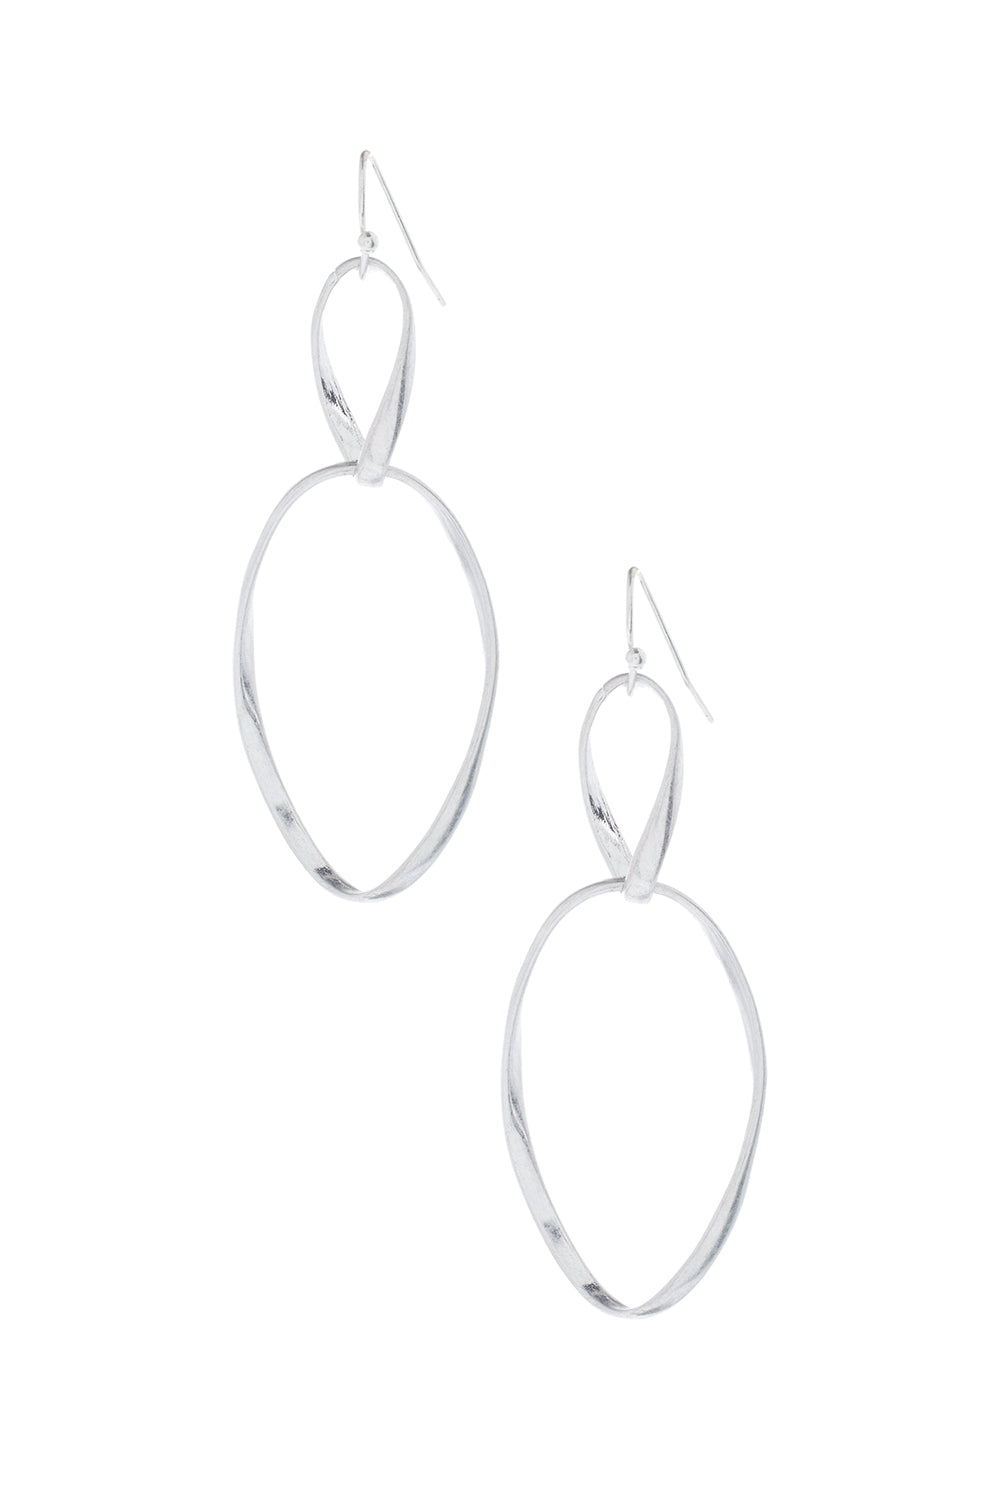 Type 2 Linked Comfort Earrings